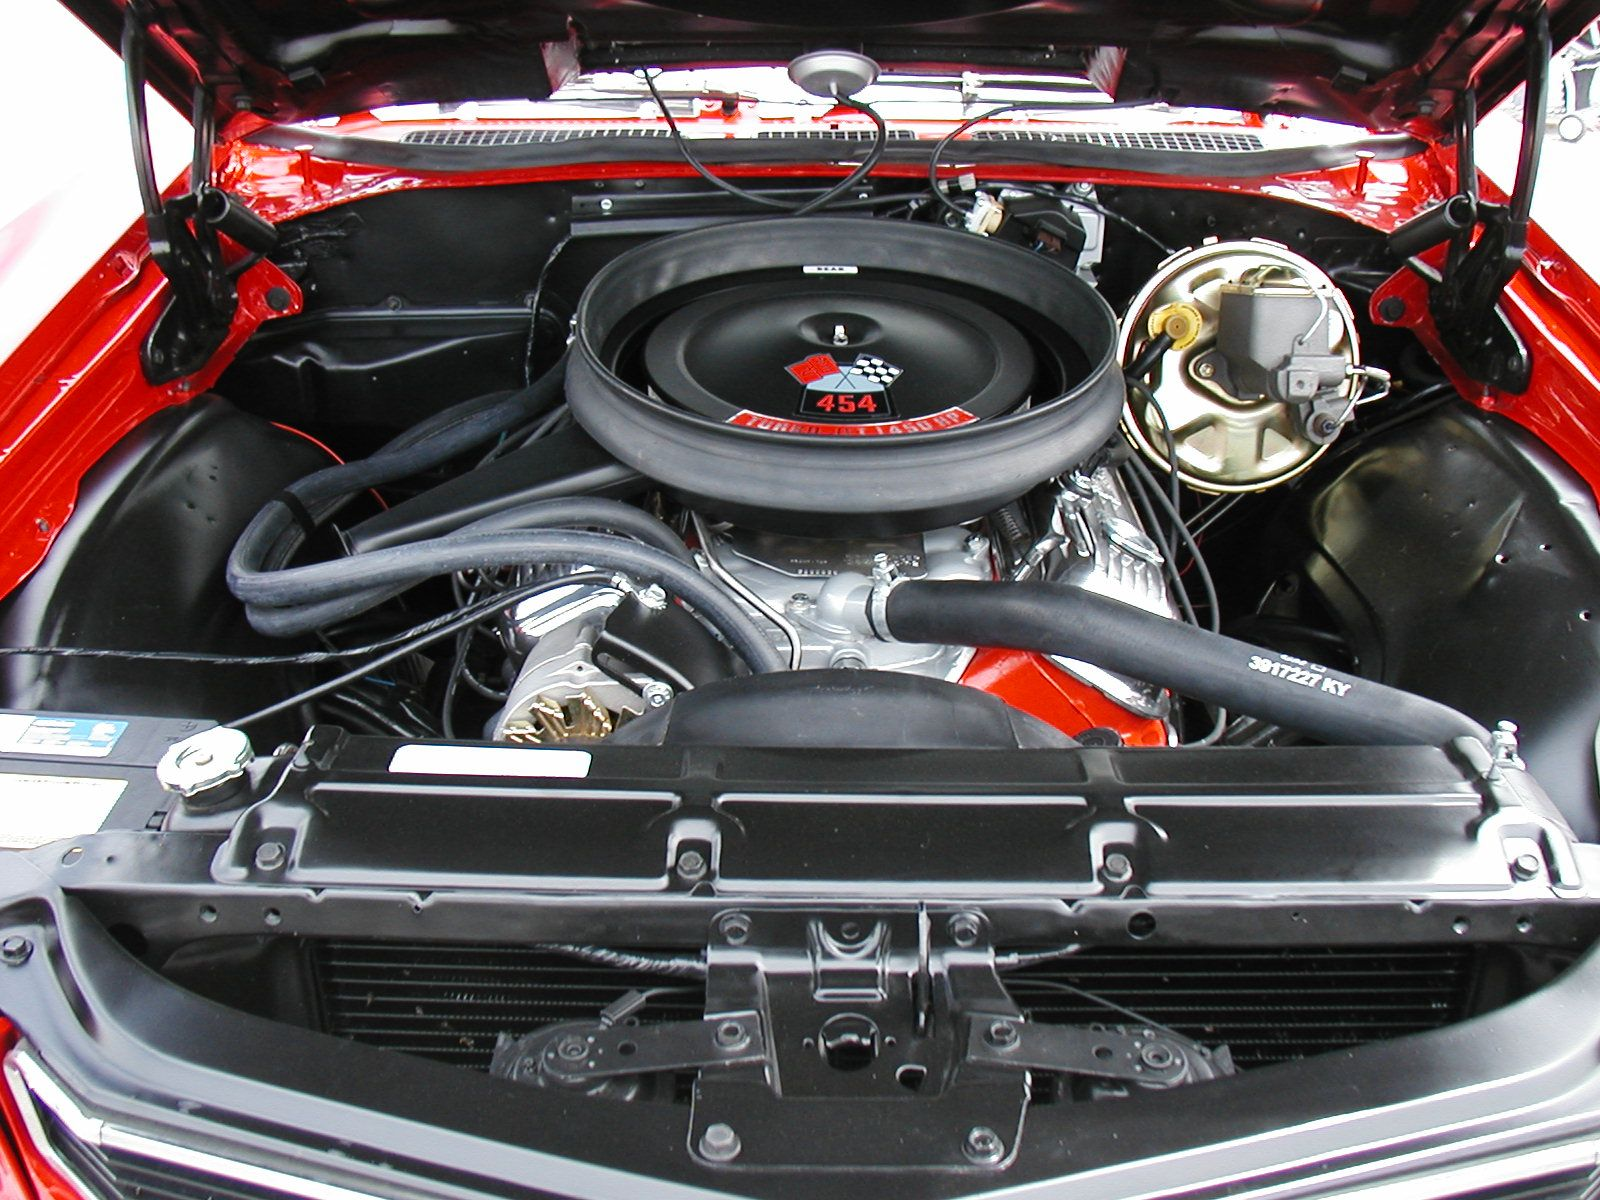 1970 Chevelle SS, Cranberry Red, engine compartment  | Muscle Cars